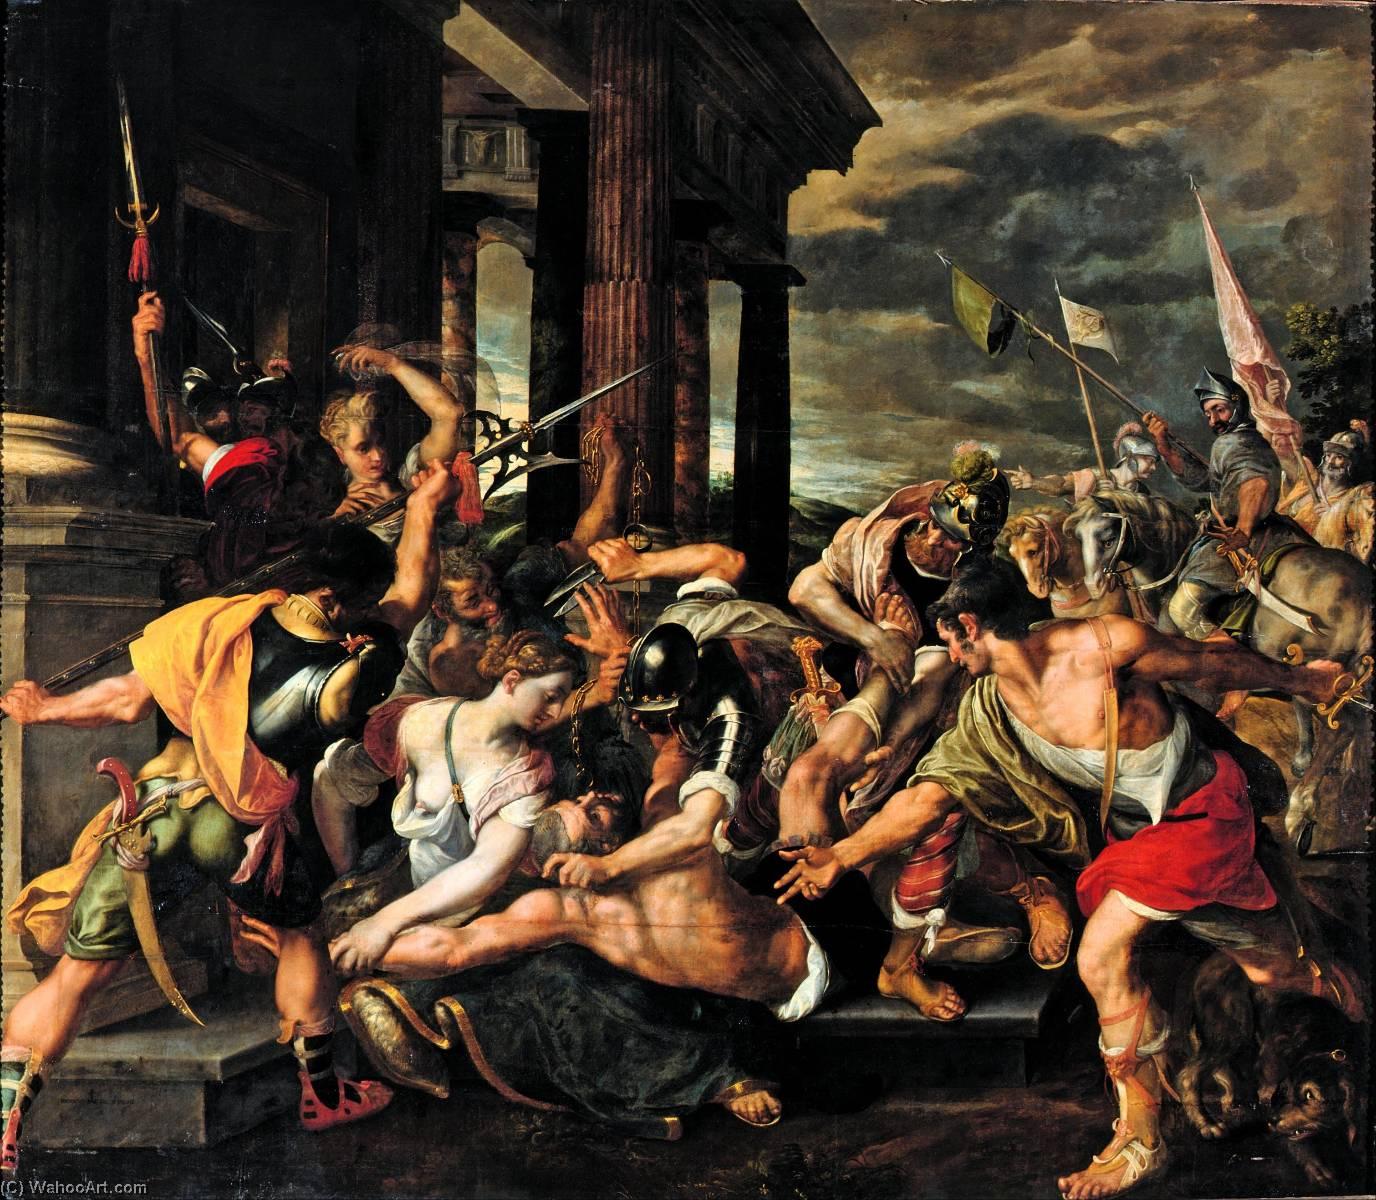 Delilah's Betrayal and Samson's Imprisonment by the Philistines, 1580 by Joos Van Winghe | Oil Painting | WahooArt.com